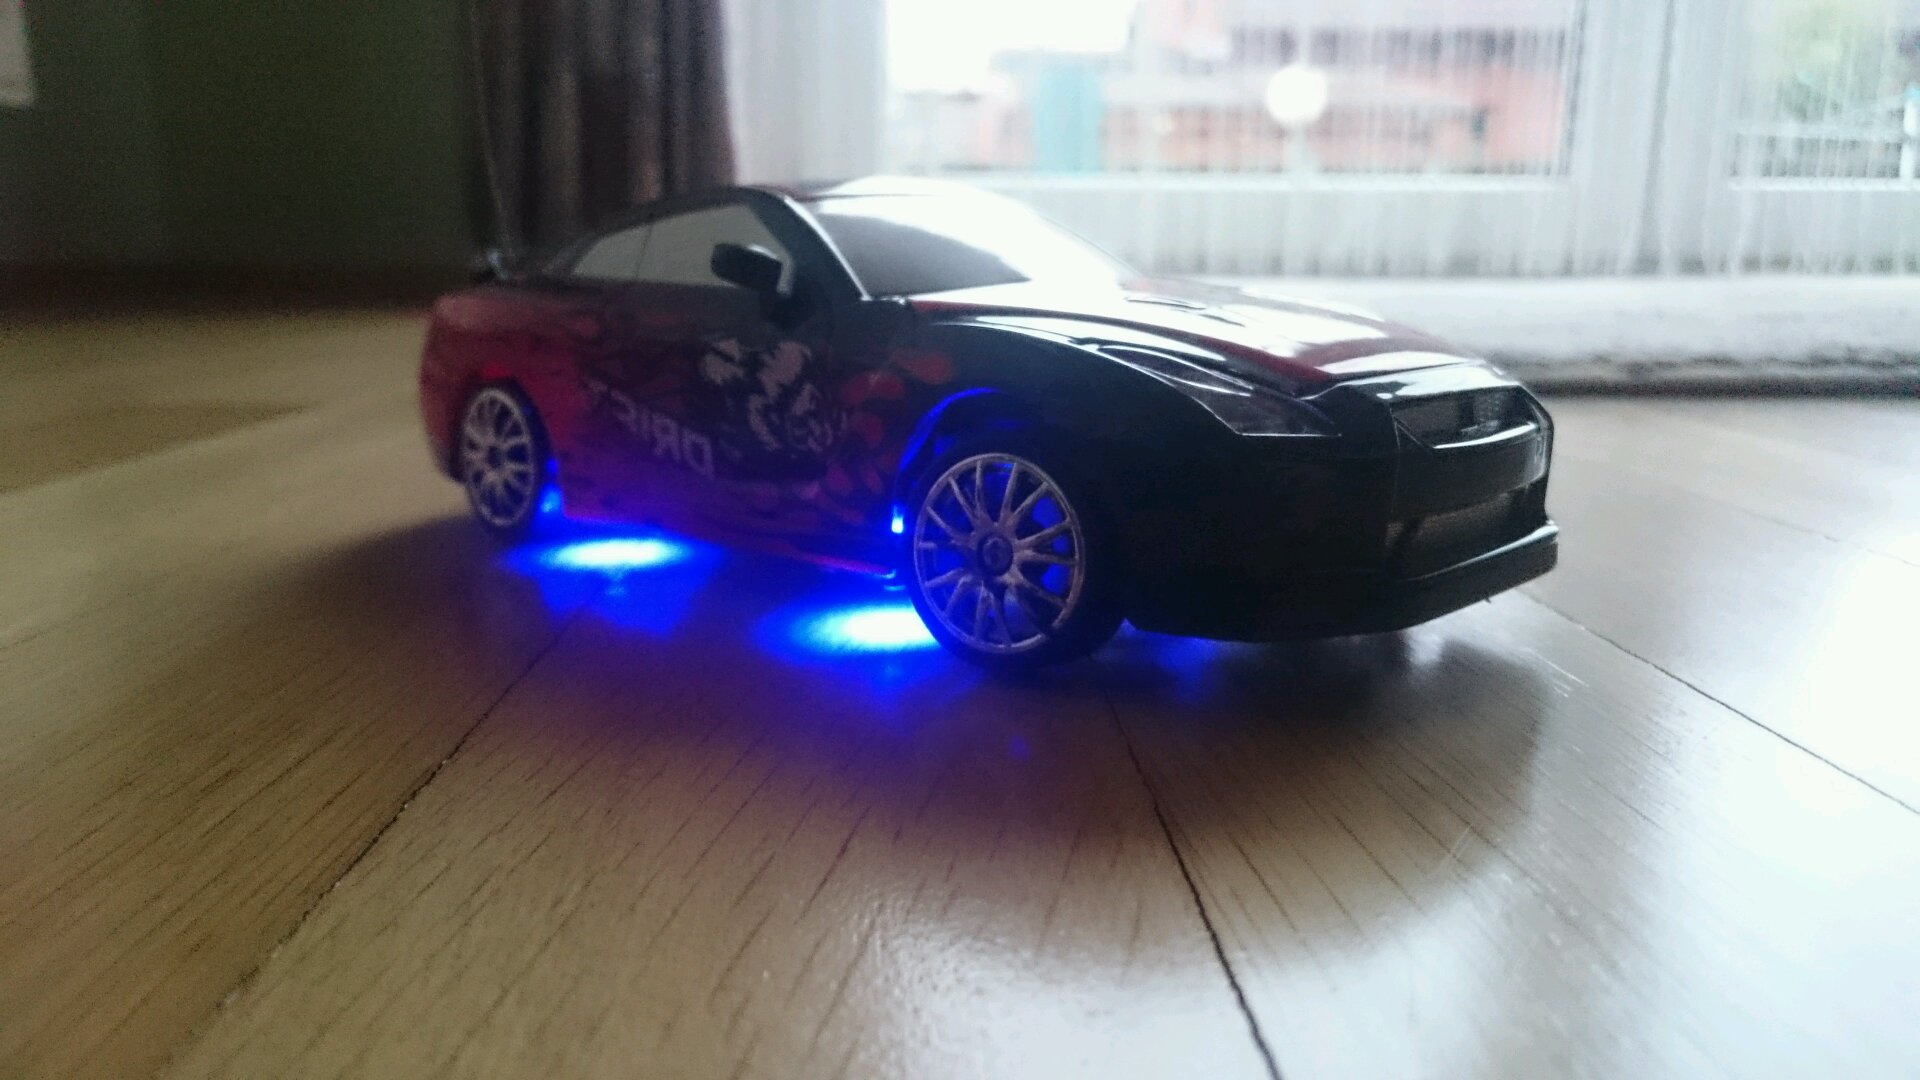 Best 15 Ever Spent Xd Awd Drift Car From Amazon Just Search For Drift King Rc Car